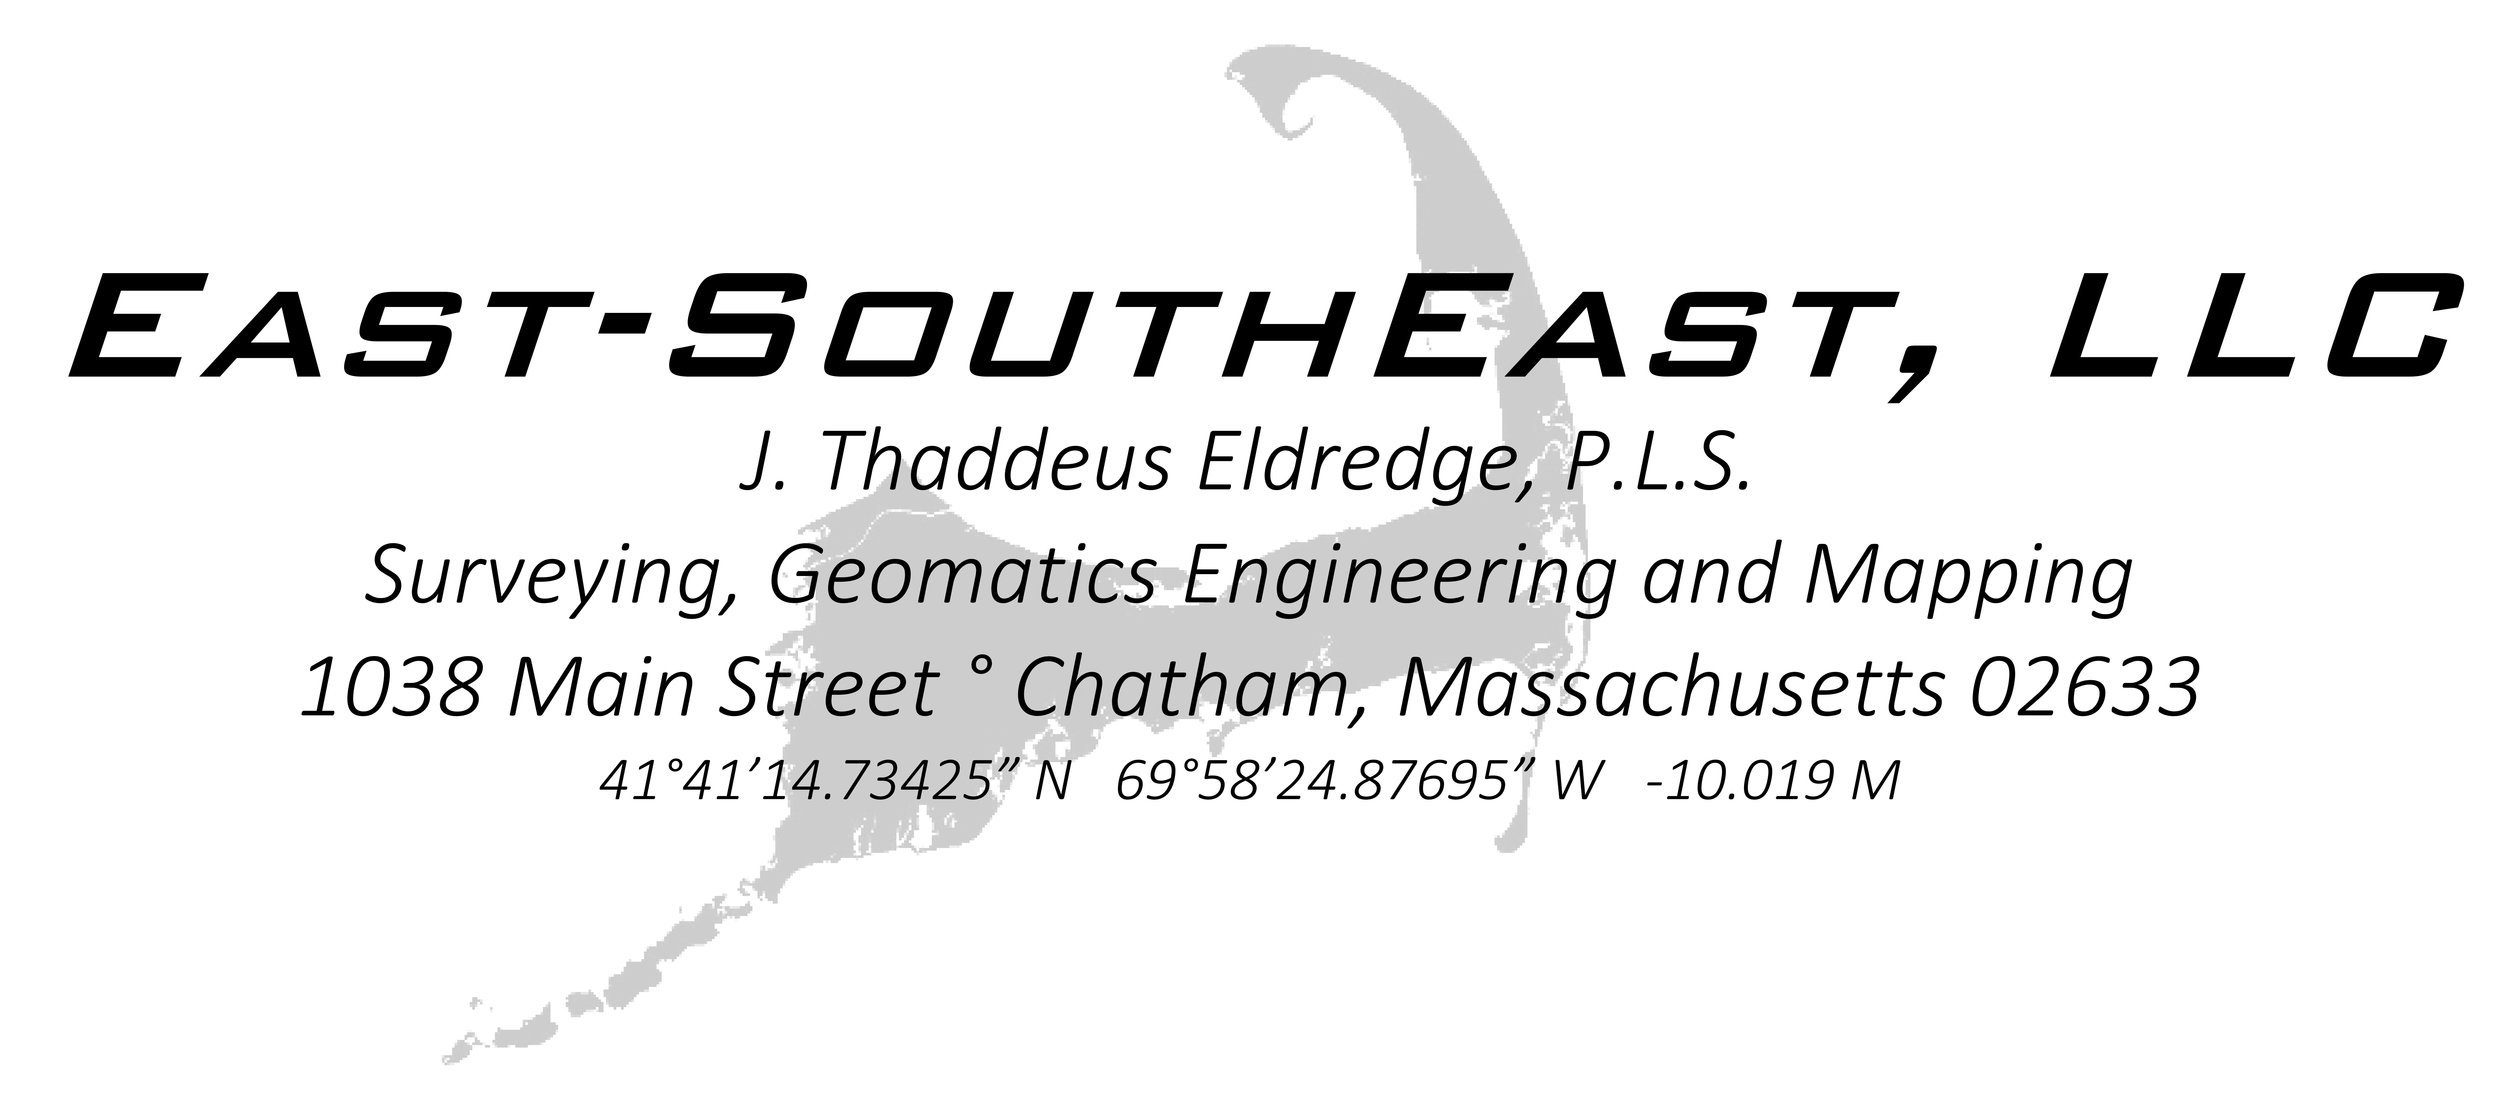 J. Thaddeus Eldredge, PLS has opened a new firm. Find out more here.